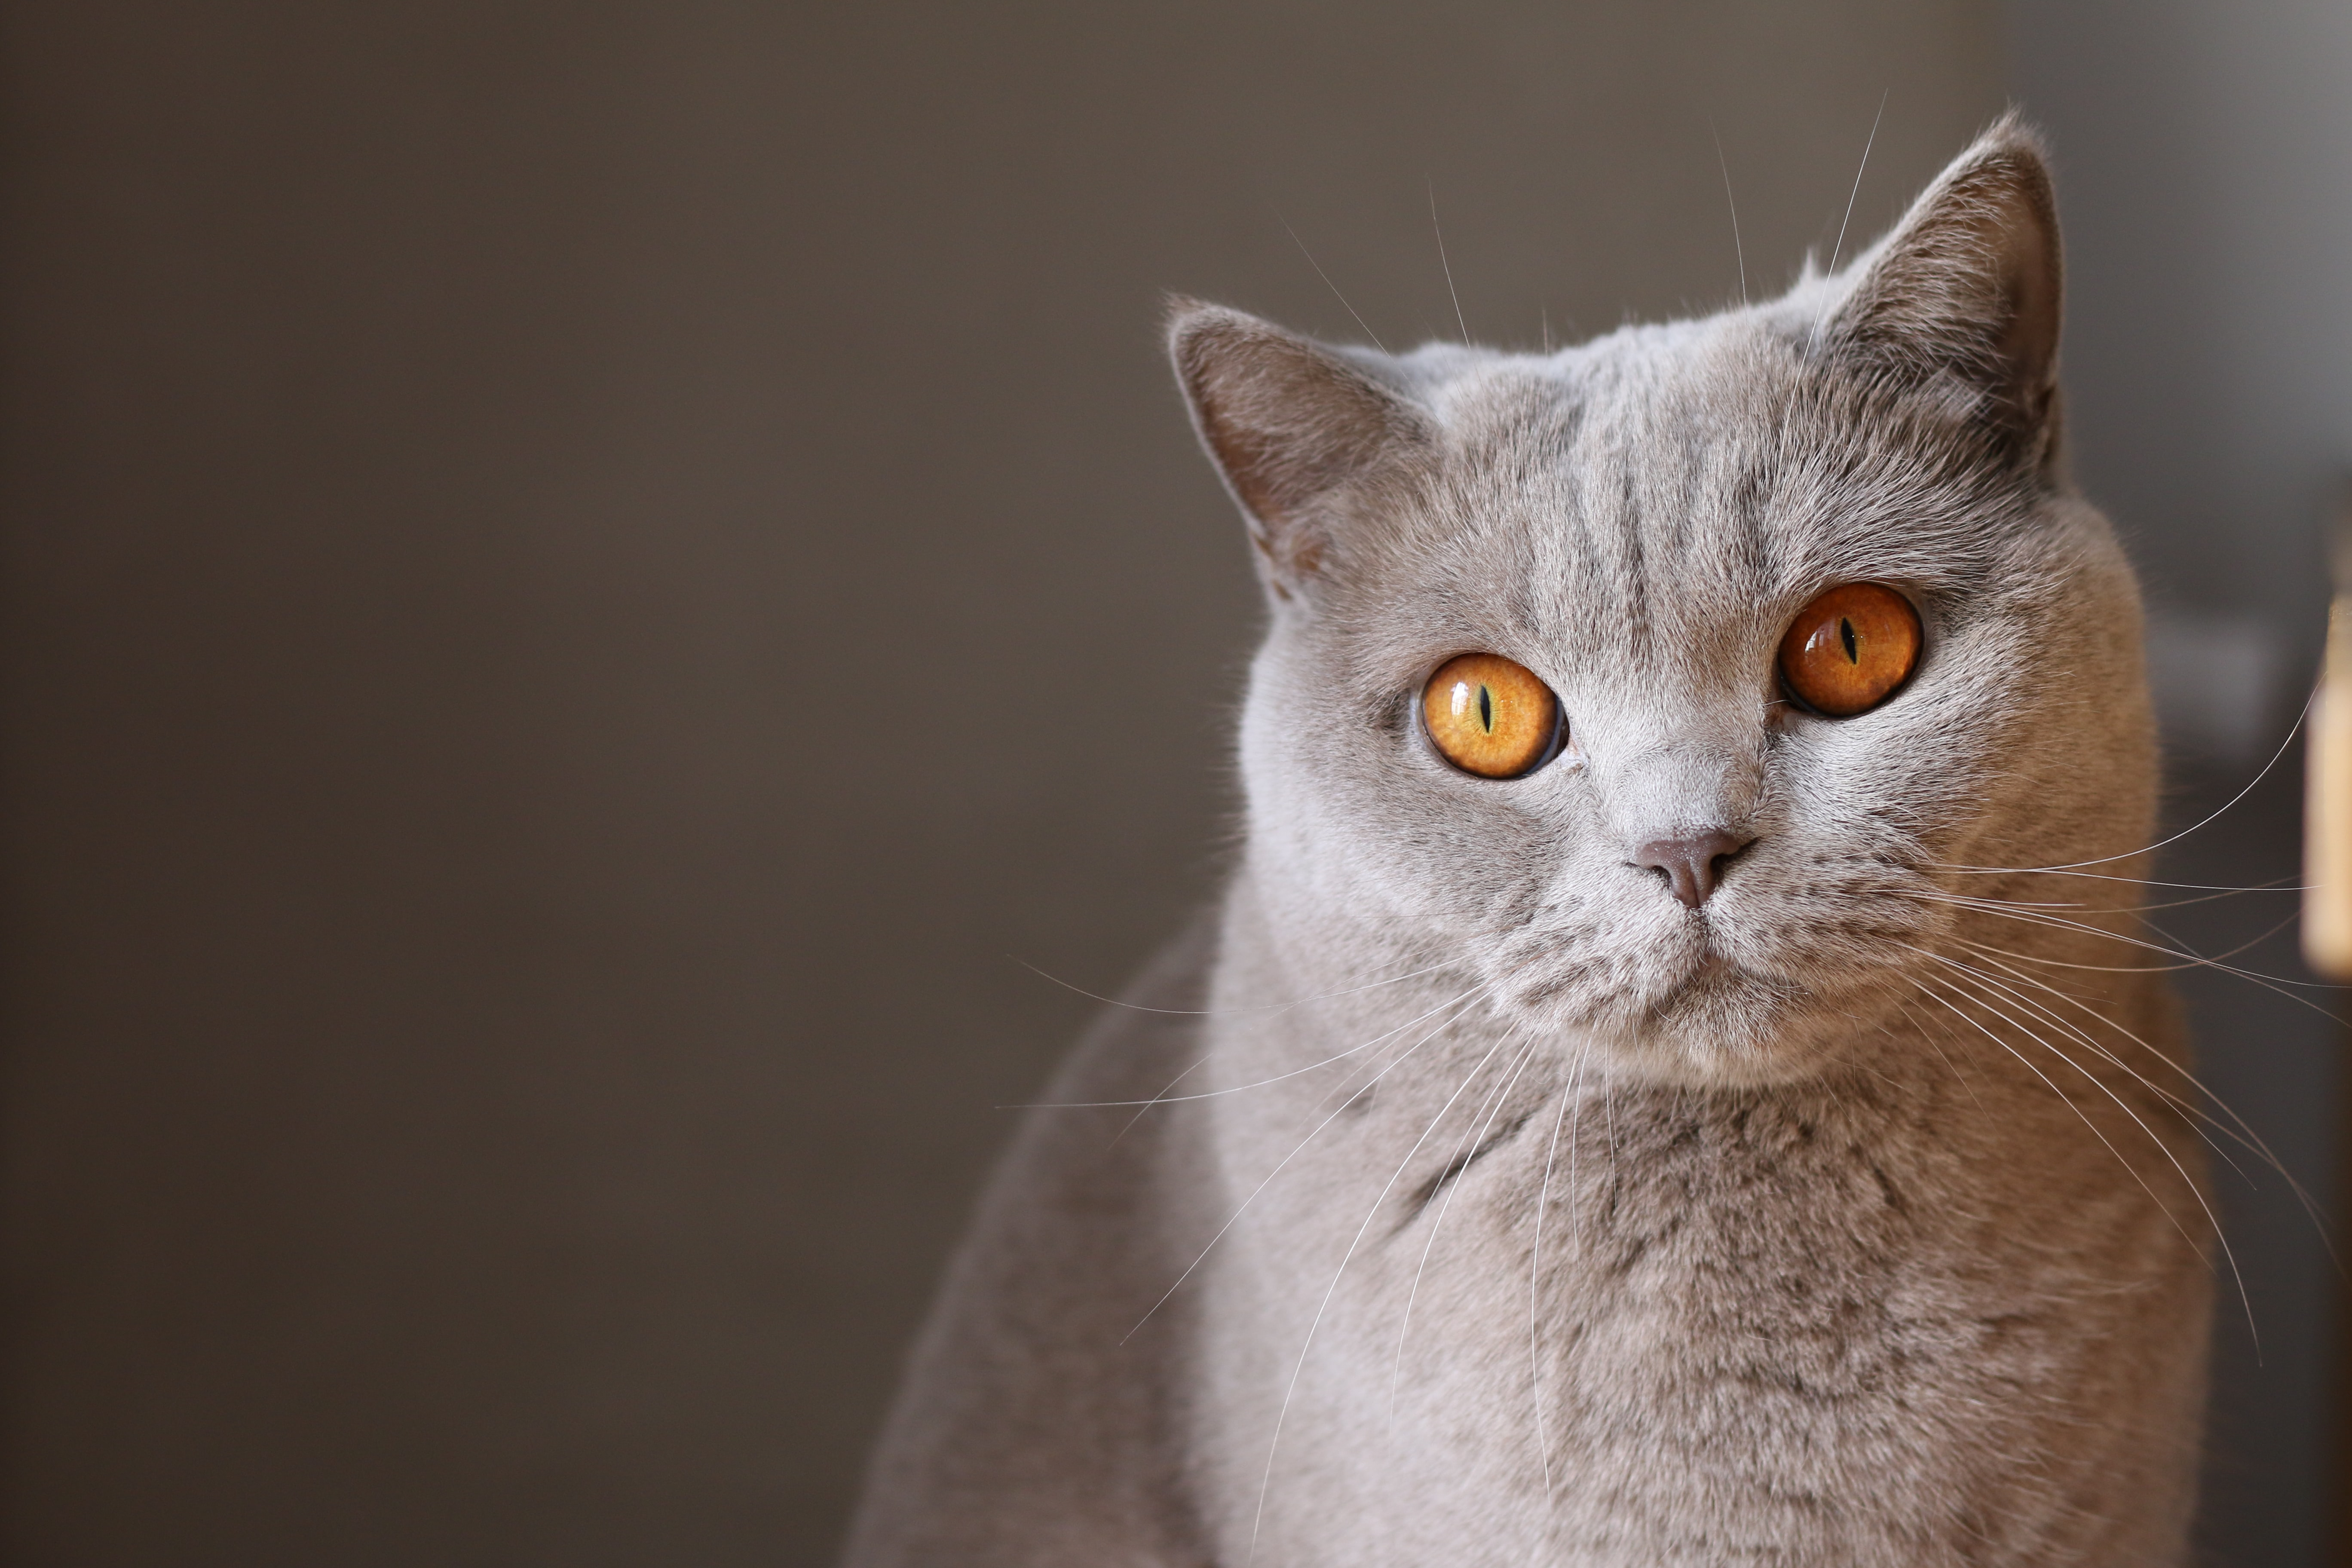 Close-up of a gray short-haired cat